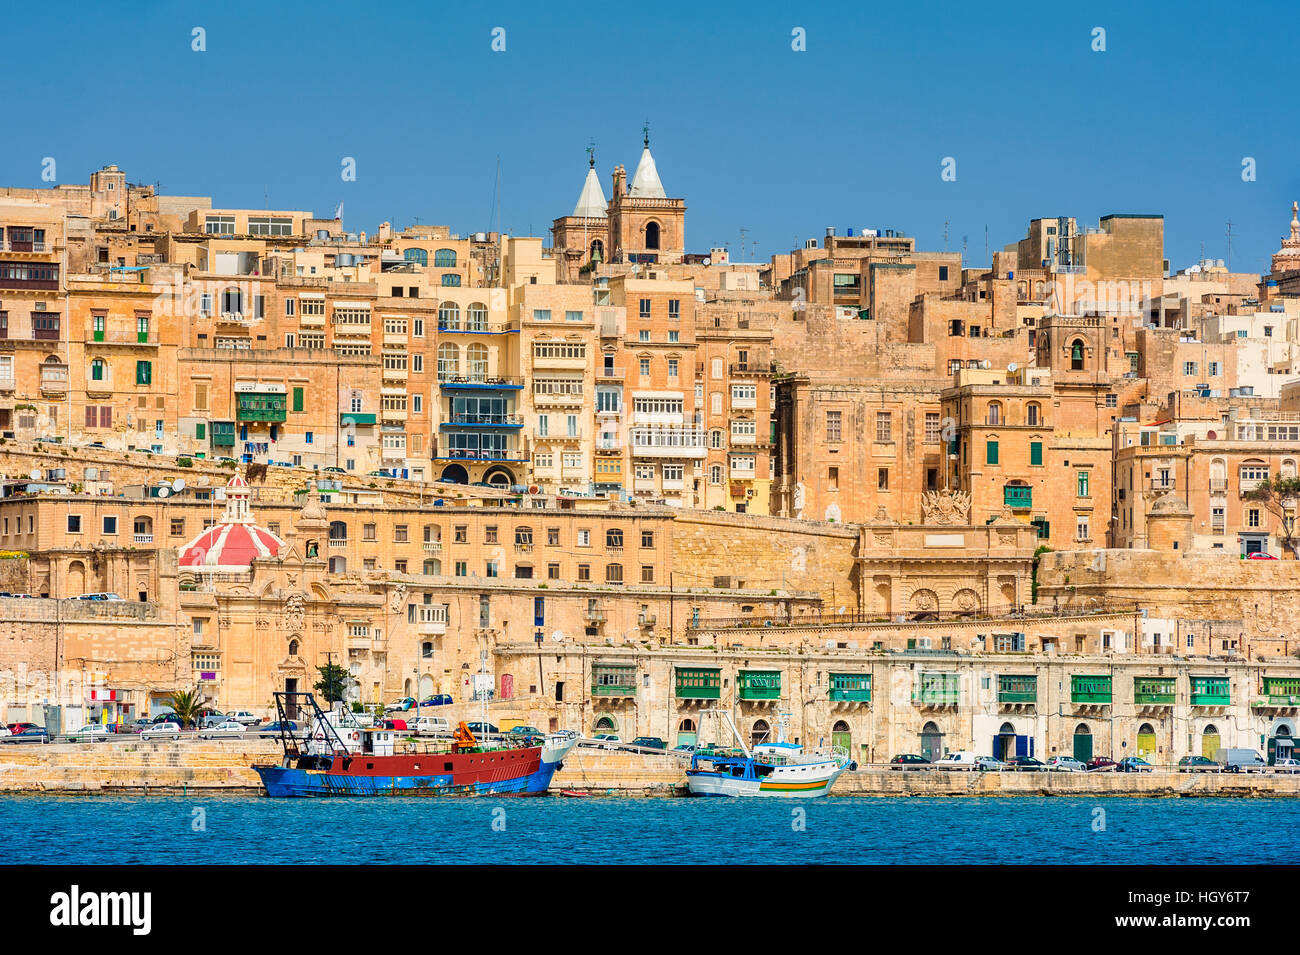 Fortified city of Valletta Malta - Stock Image